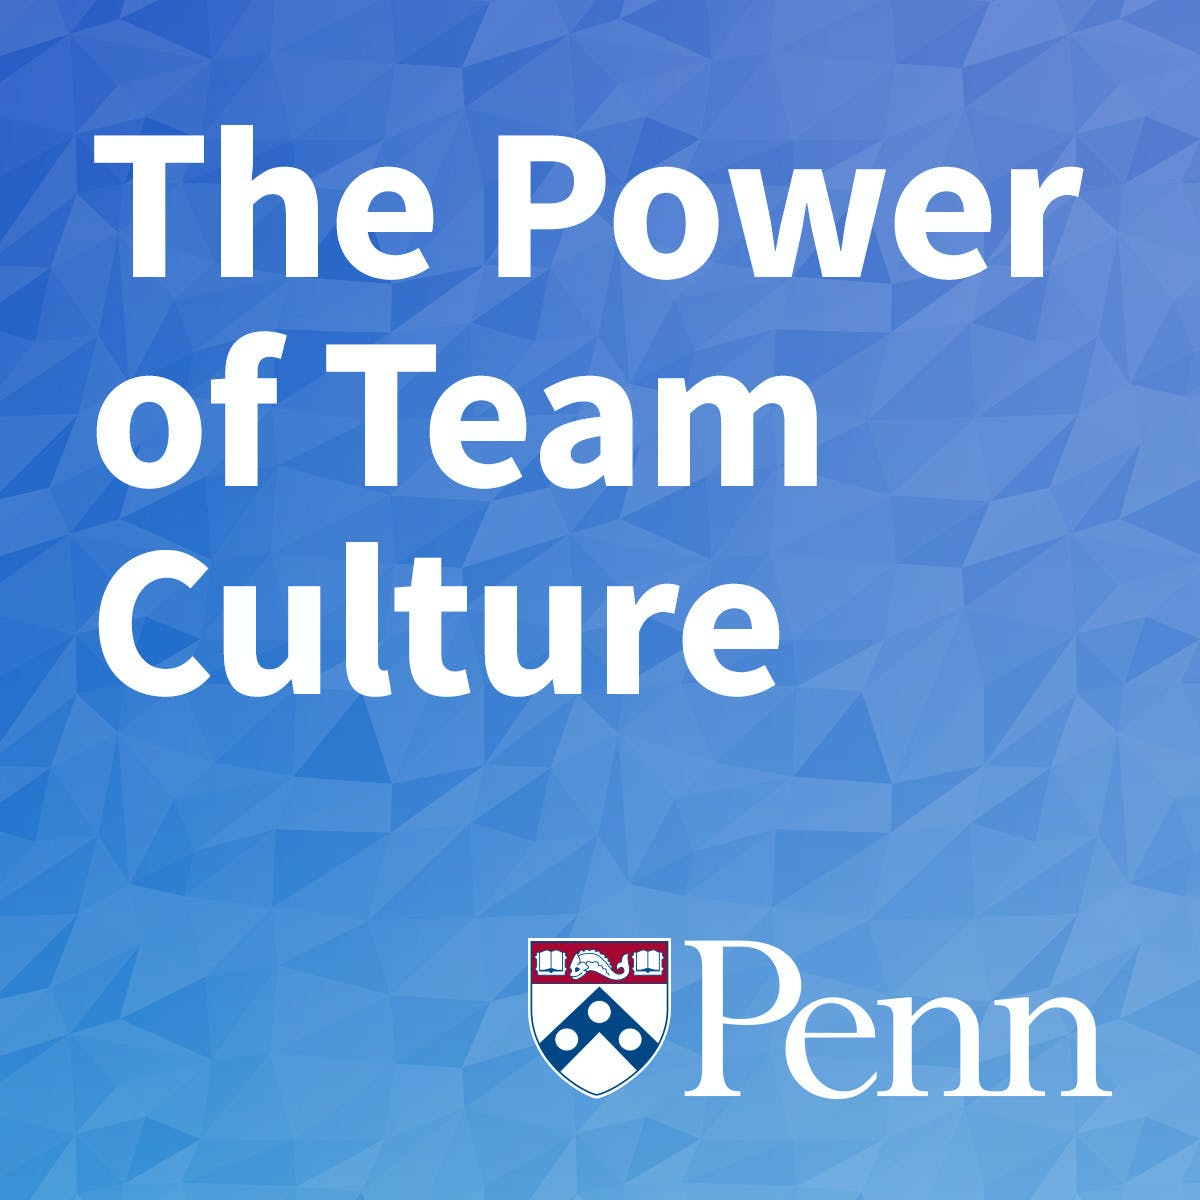 The Power of Team Culture